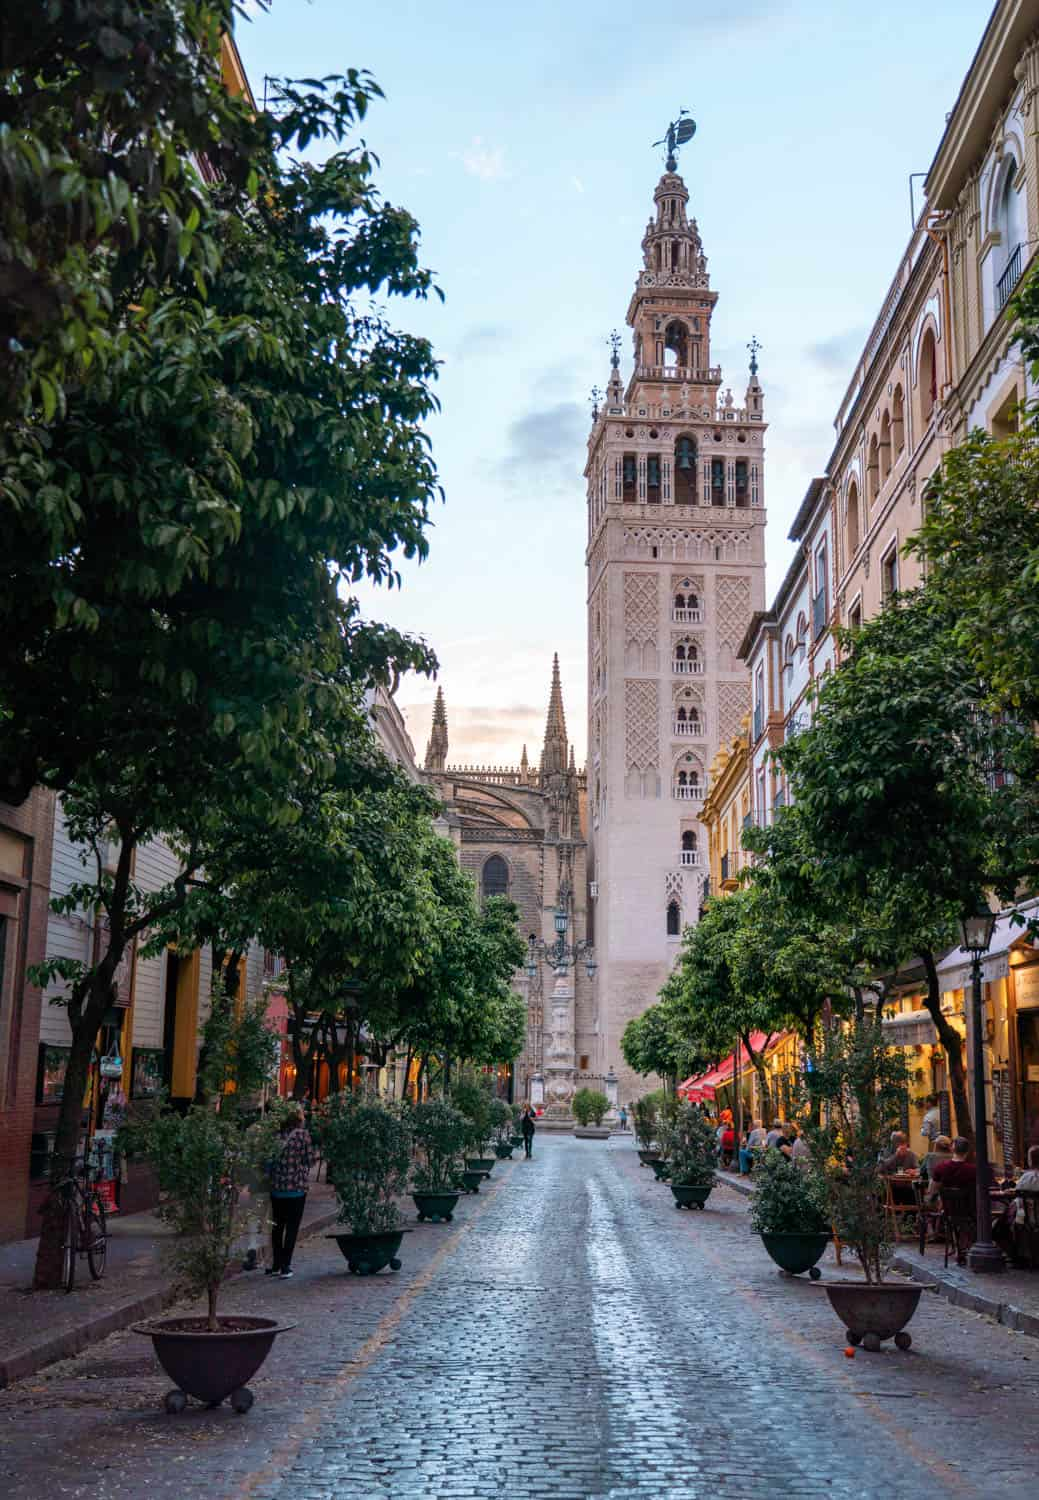 View of La Giralda Bell Tower from Calle Mateos Gago Seville